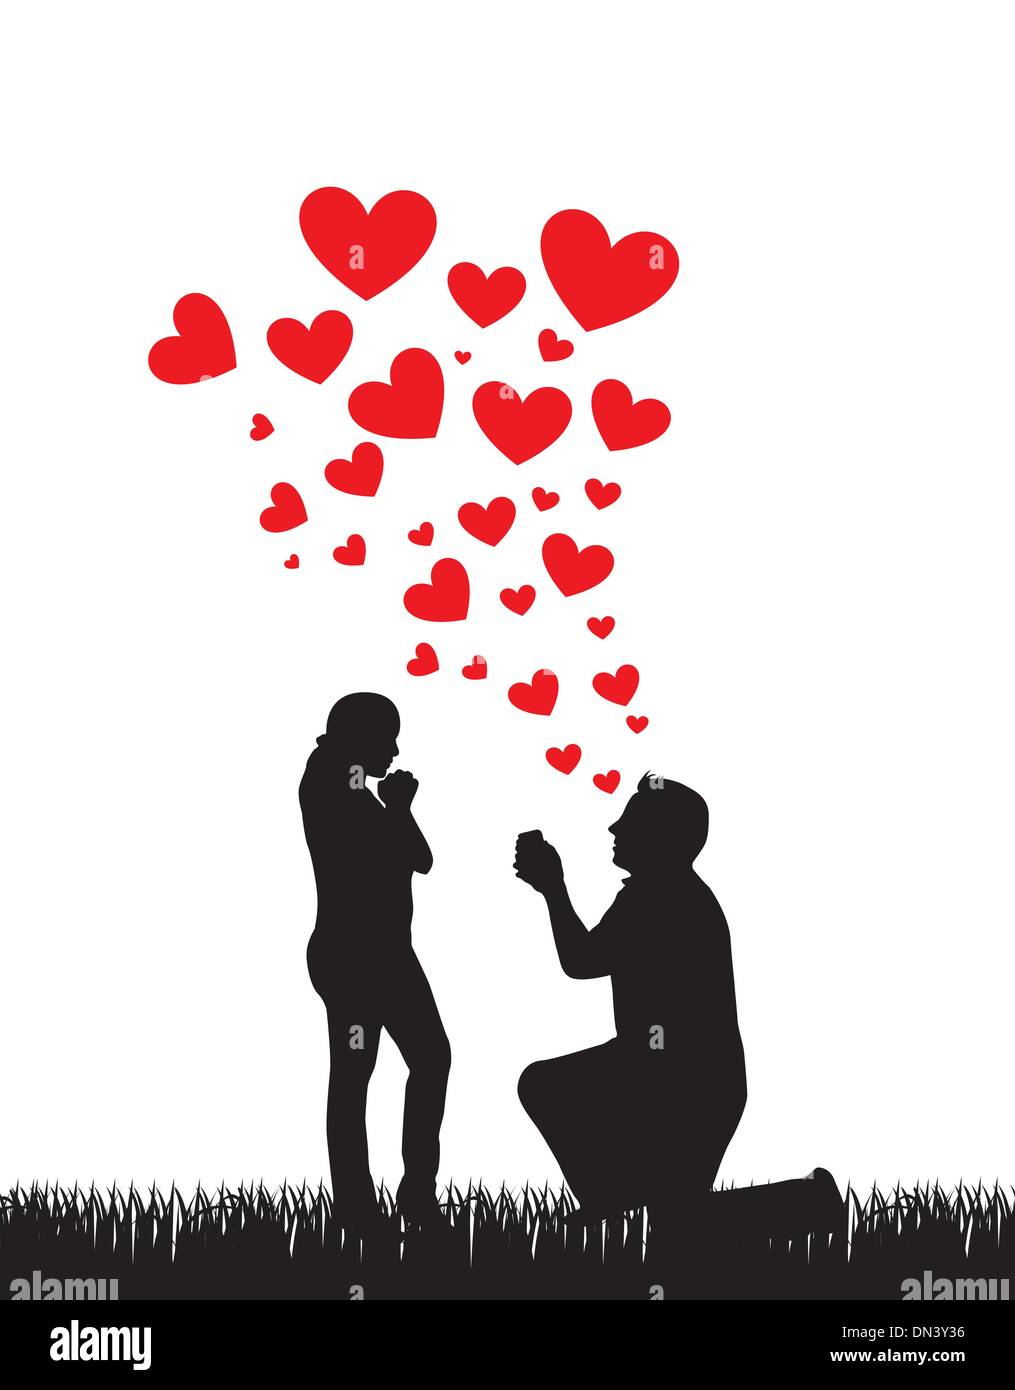 proposal wedding - Stock Image